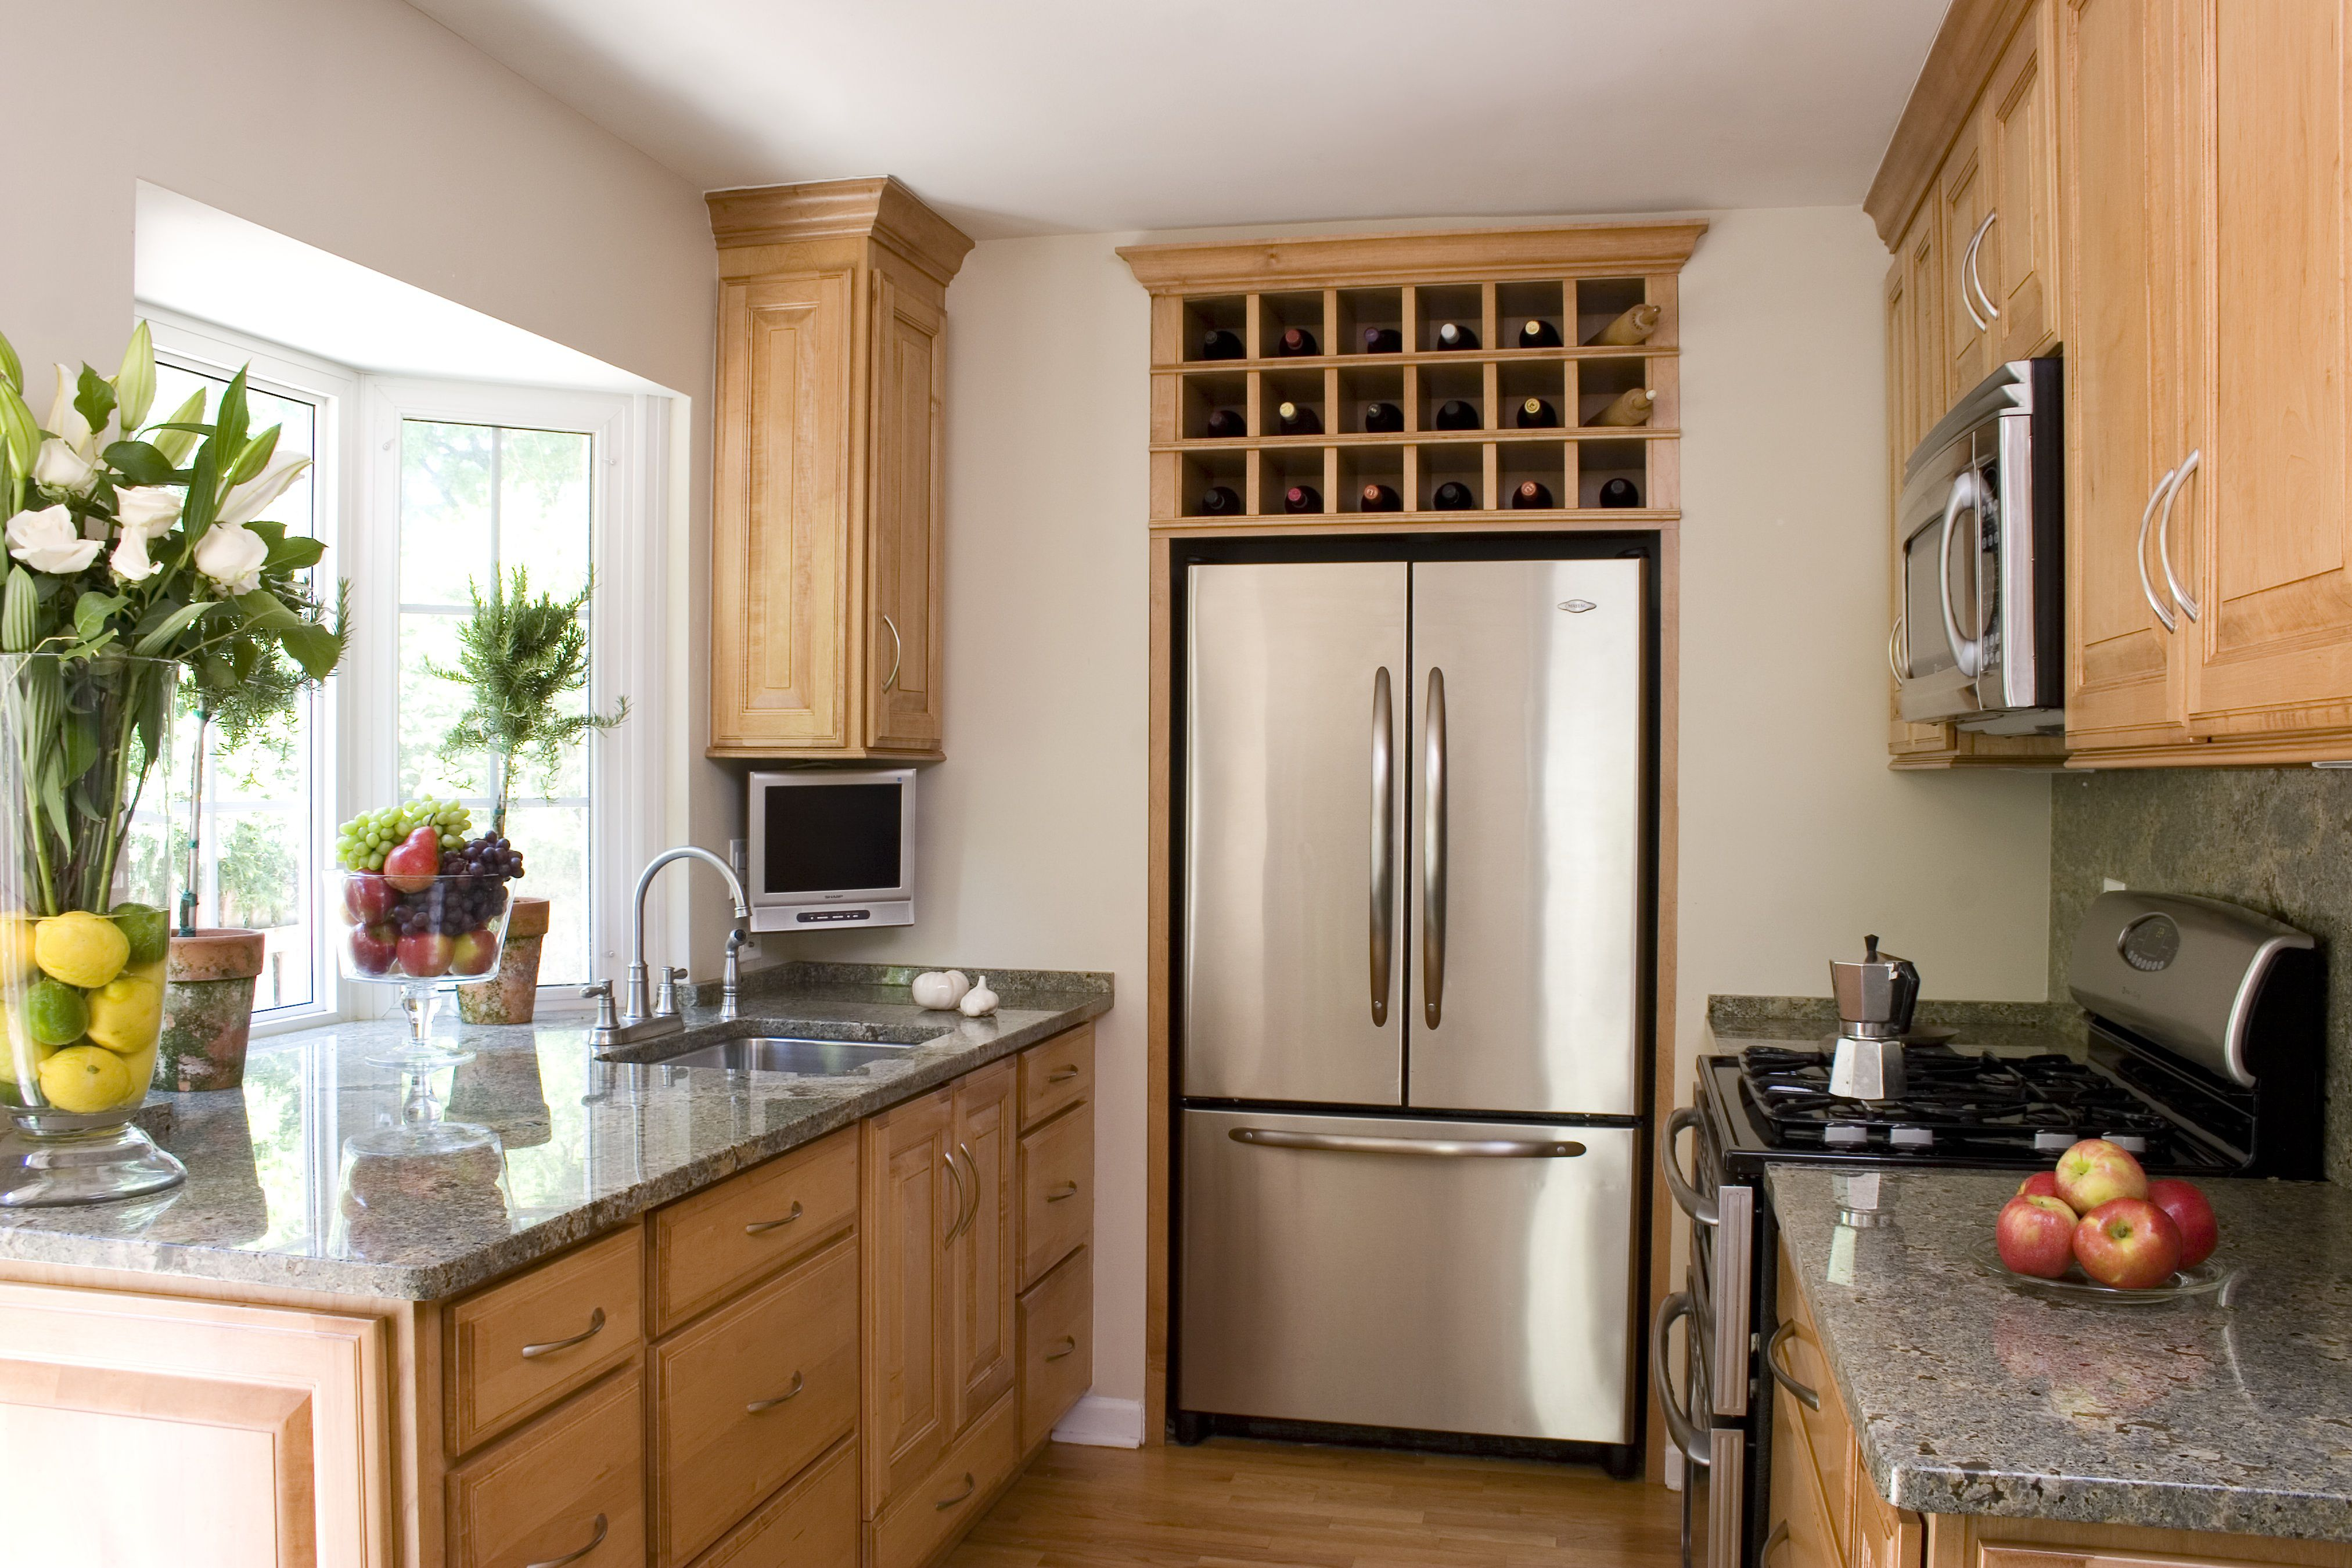 Ways To Open Small Kitchens Space Saving Ideas From Ikea: A Small House Tour: Smart Small Kitchen Design Ideas